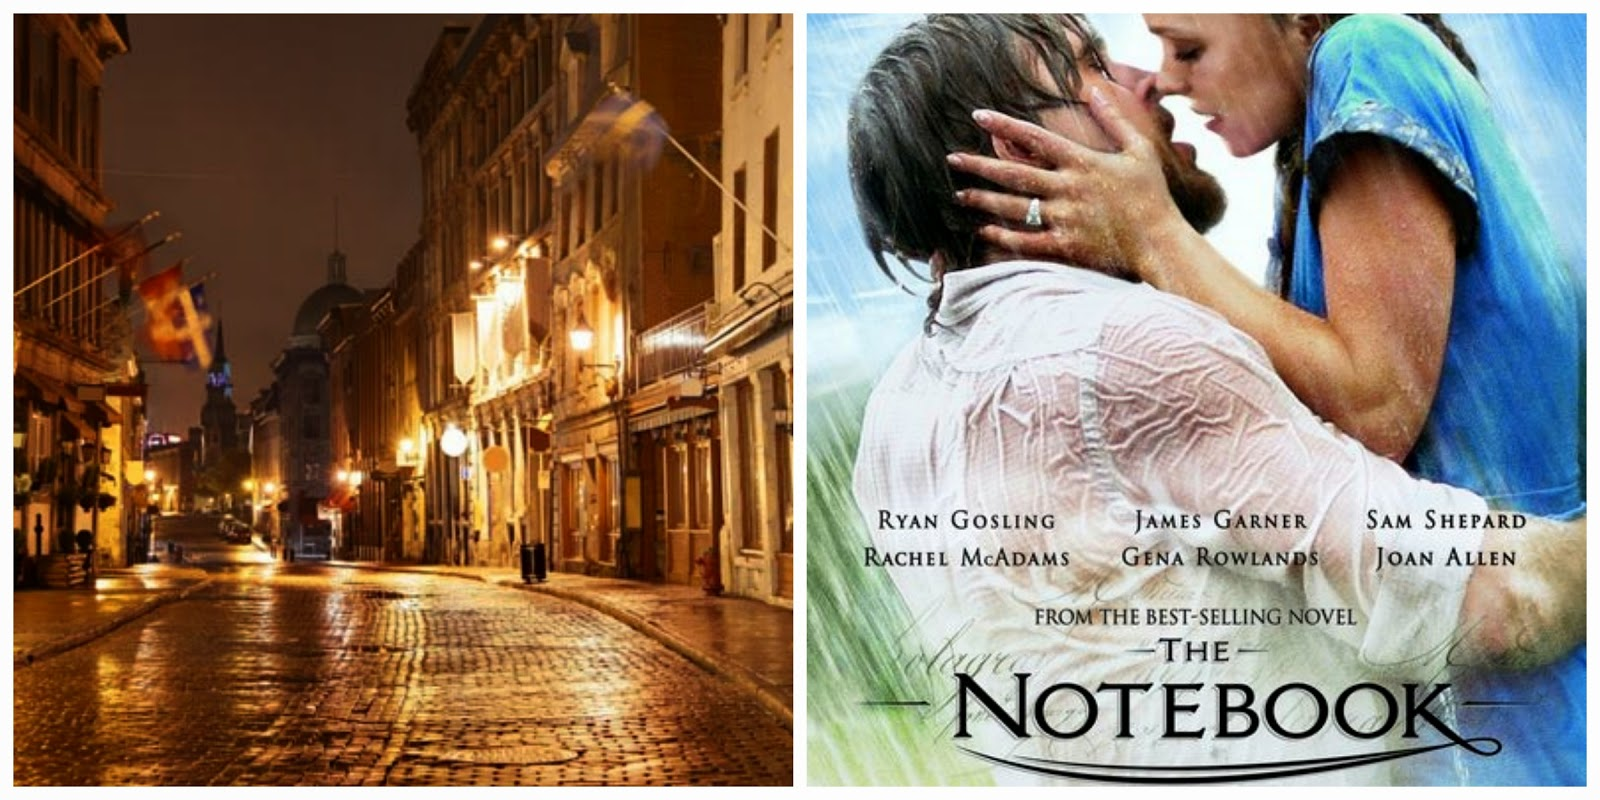 armchair book expo headquarters guest article was your fave book quebec the notebook by nicholas sparks 1996